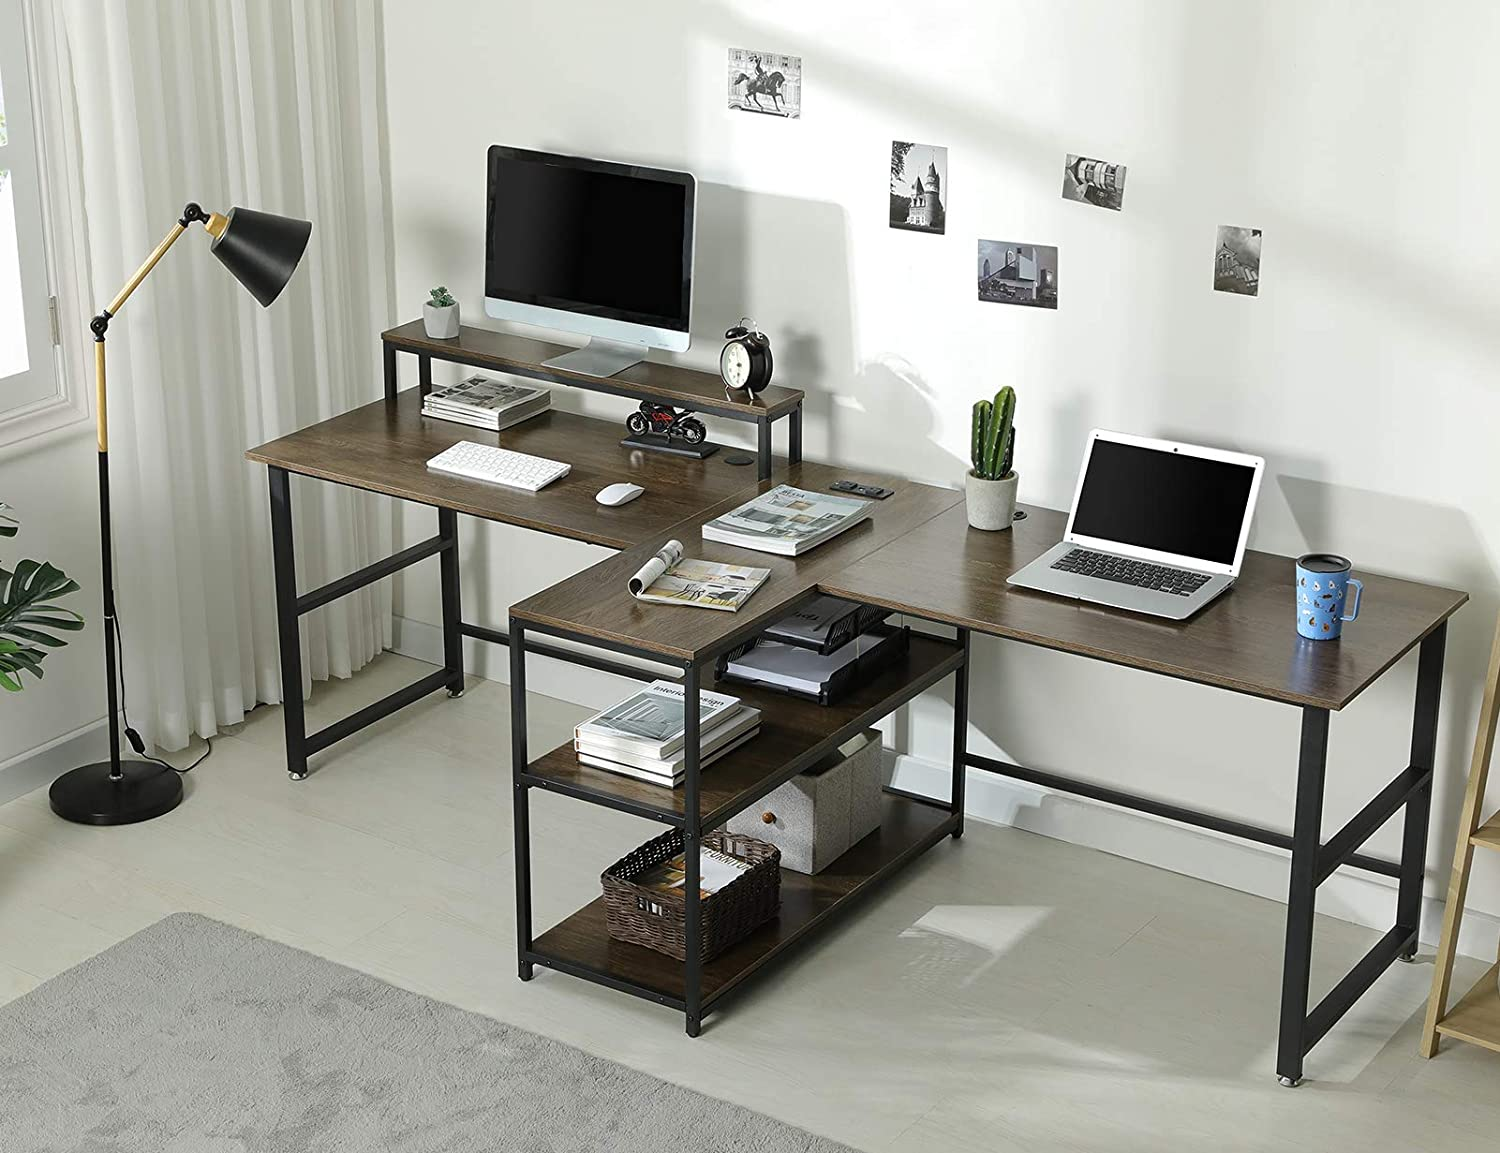 Sedeta 94.5 inches Two Person Desk, Double Computer Desk with Storage Shelves, Extra Long Workstation Desk with Monitor Stand, Power Strip with USB, Study Writing Desk for Home Office, Walnut